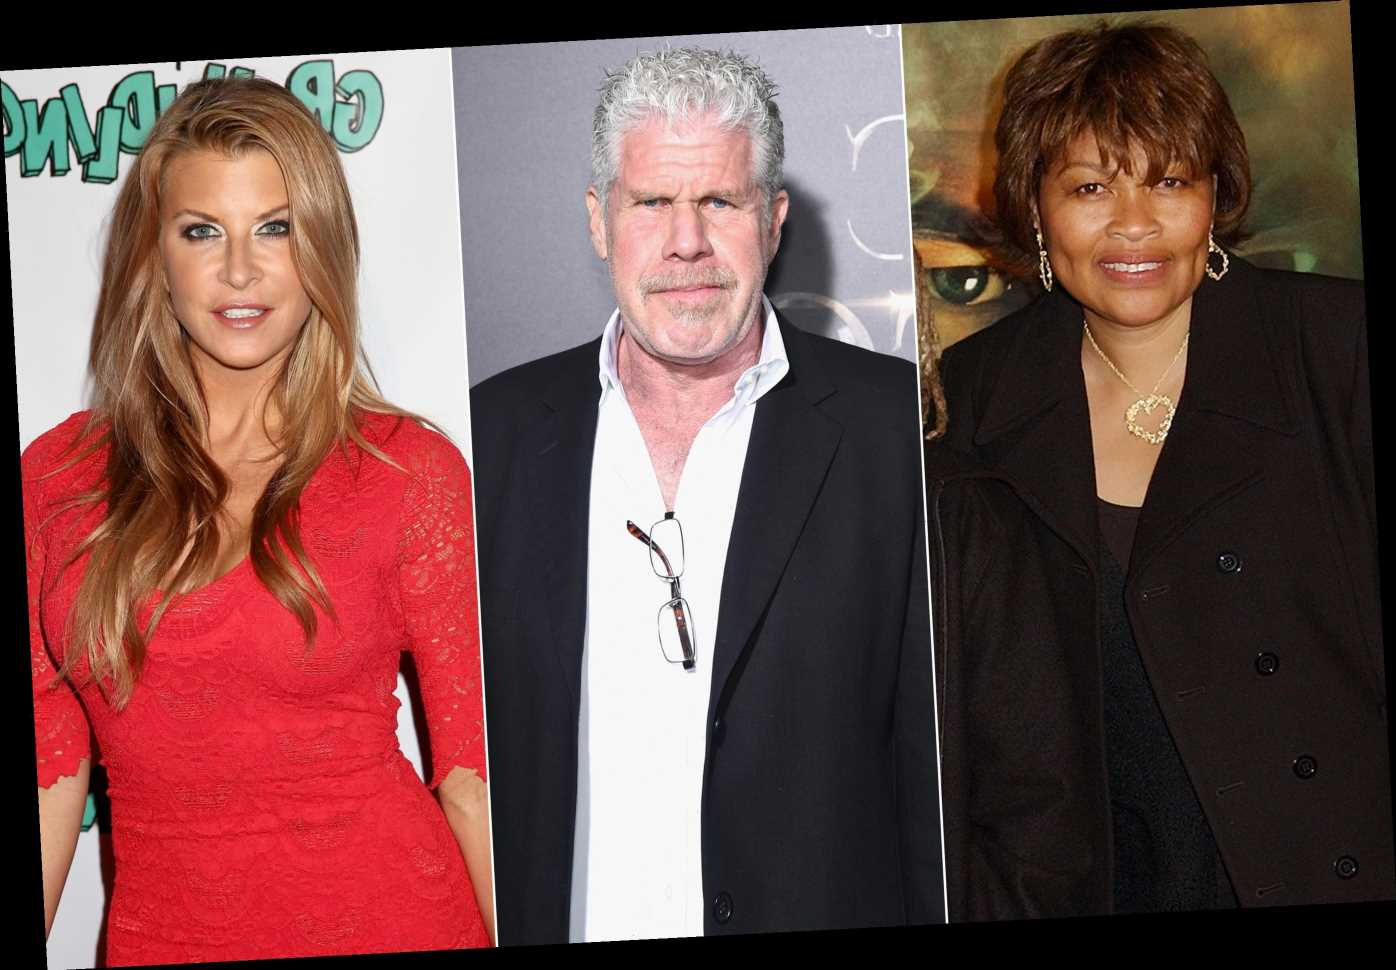 Ron Perlman Separated from His Wife 5 Days Before He Was Spotted Kissing Costar Allison Dunbar